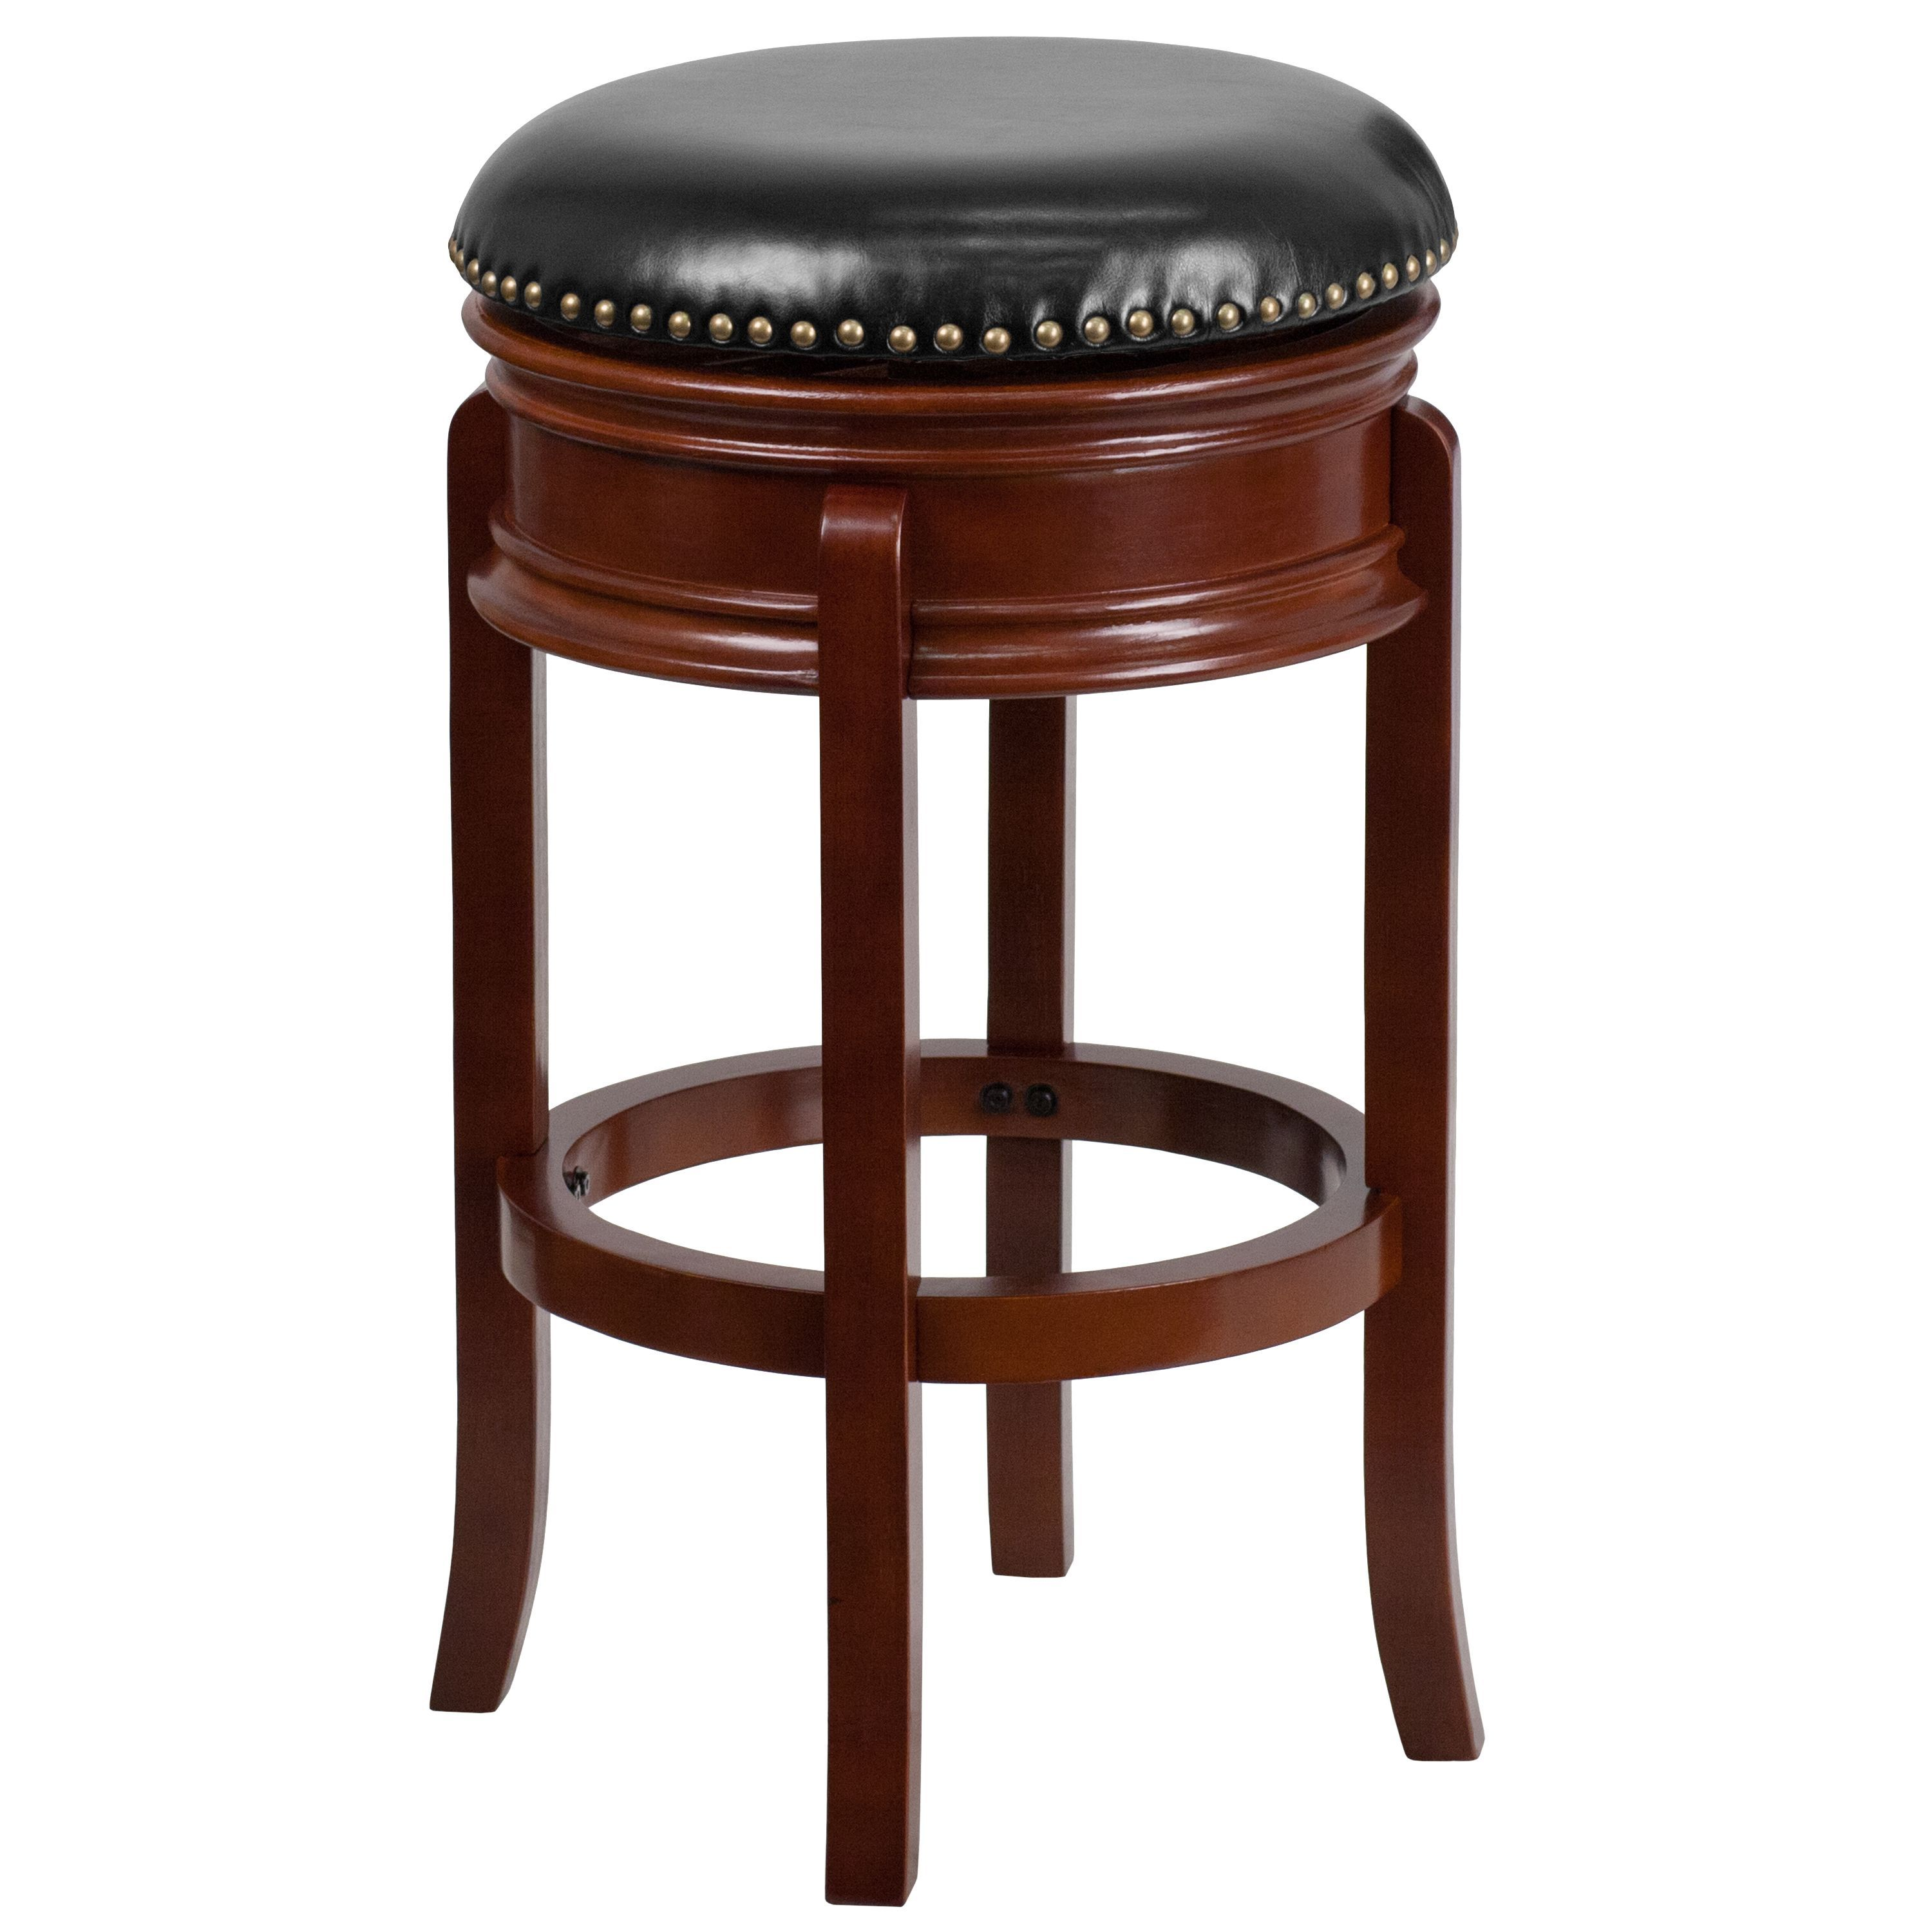 Wondrous Flash Furniture 29 Inch Backless Light Wood Barstool With Squirreltailoven Fun Painted Chair Ideas Images Squirreltailovenorg